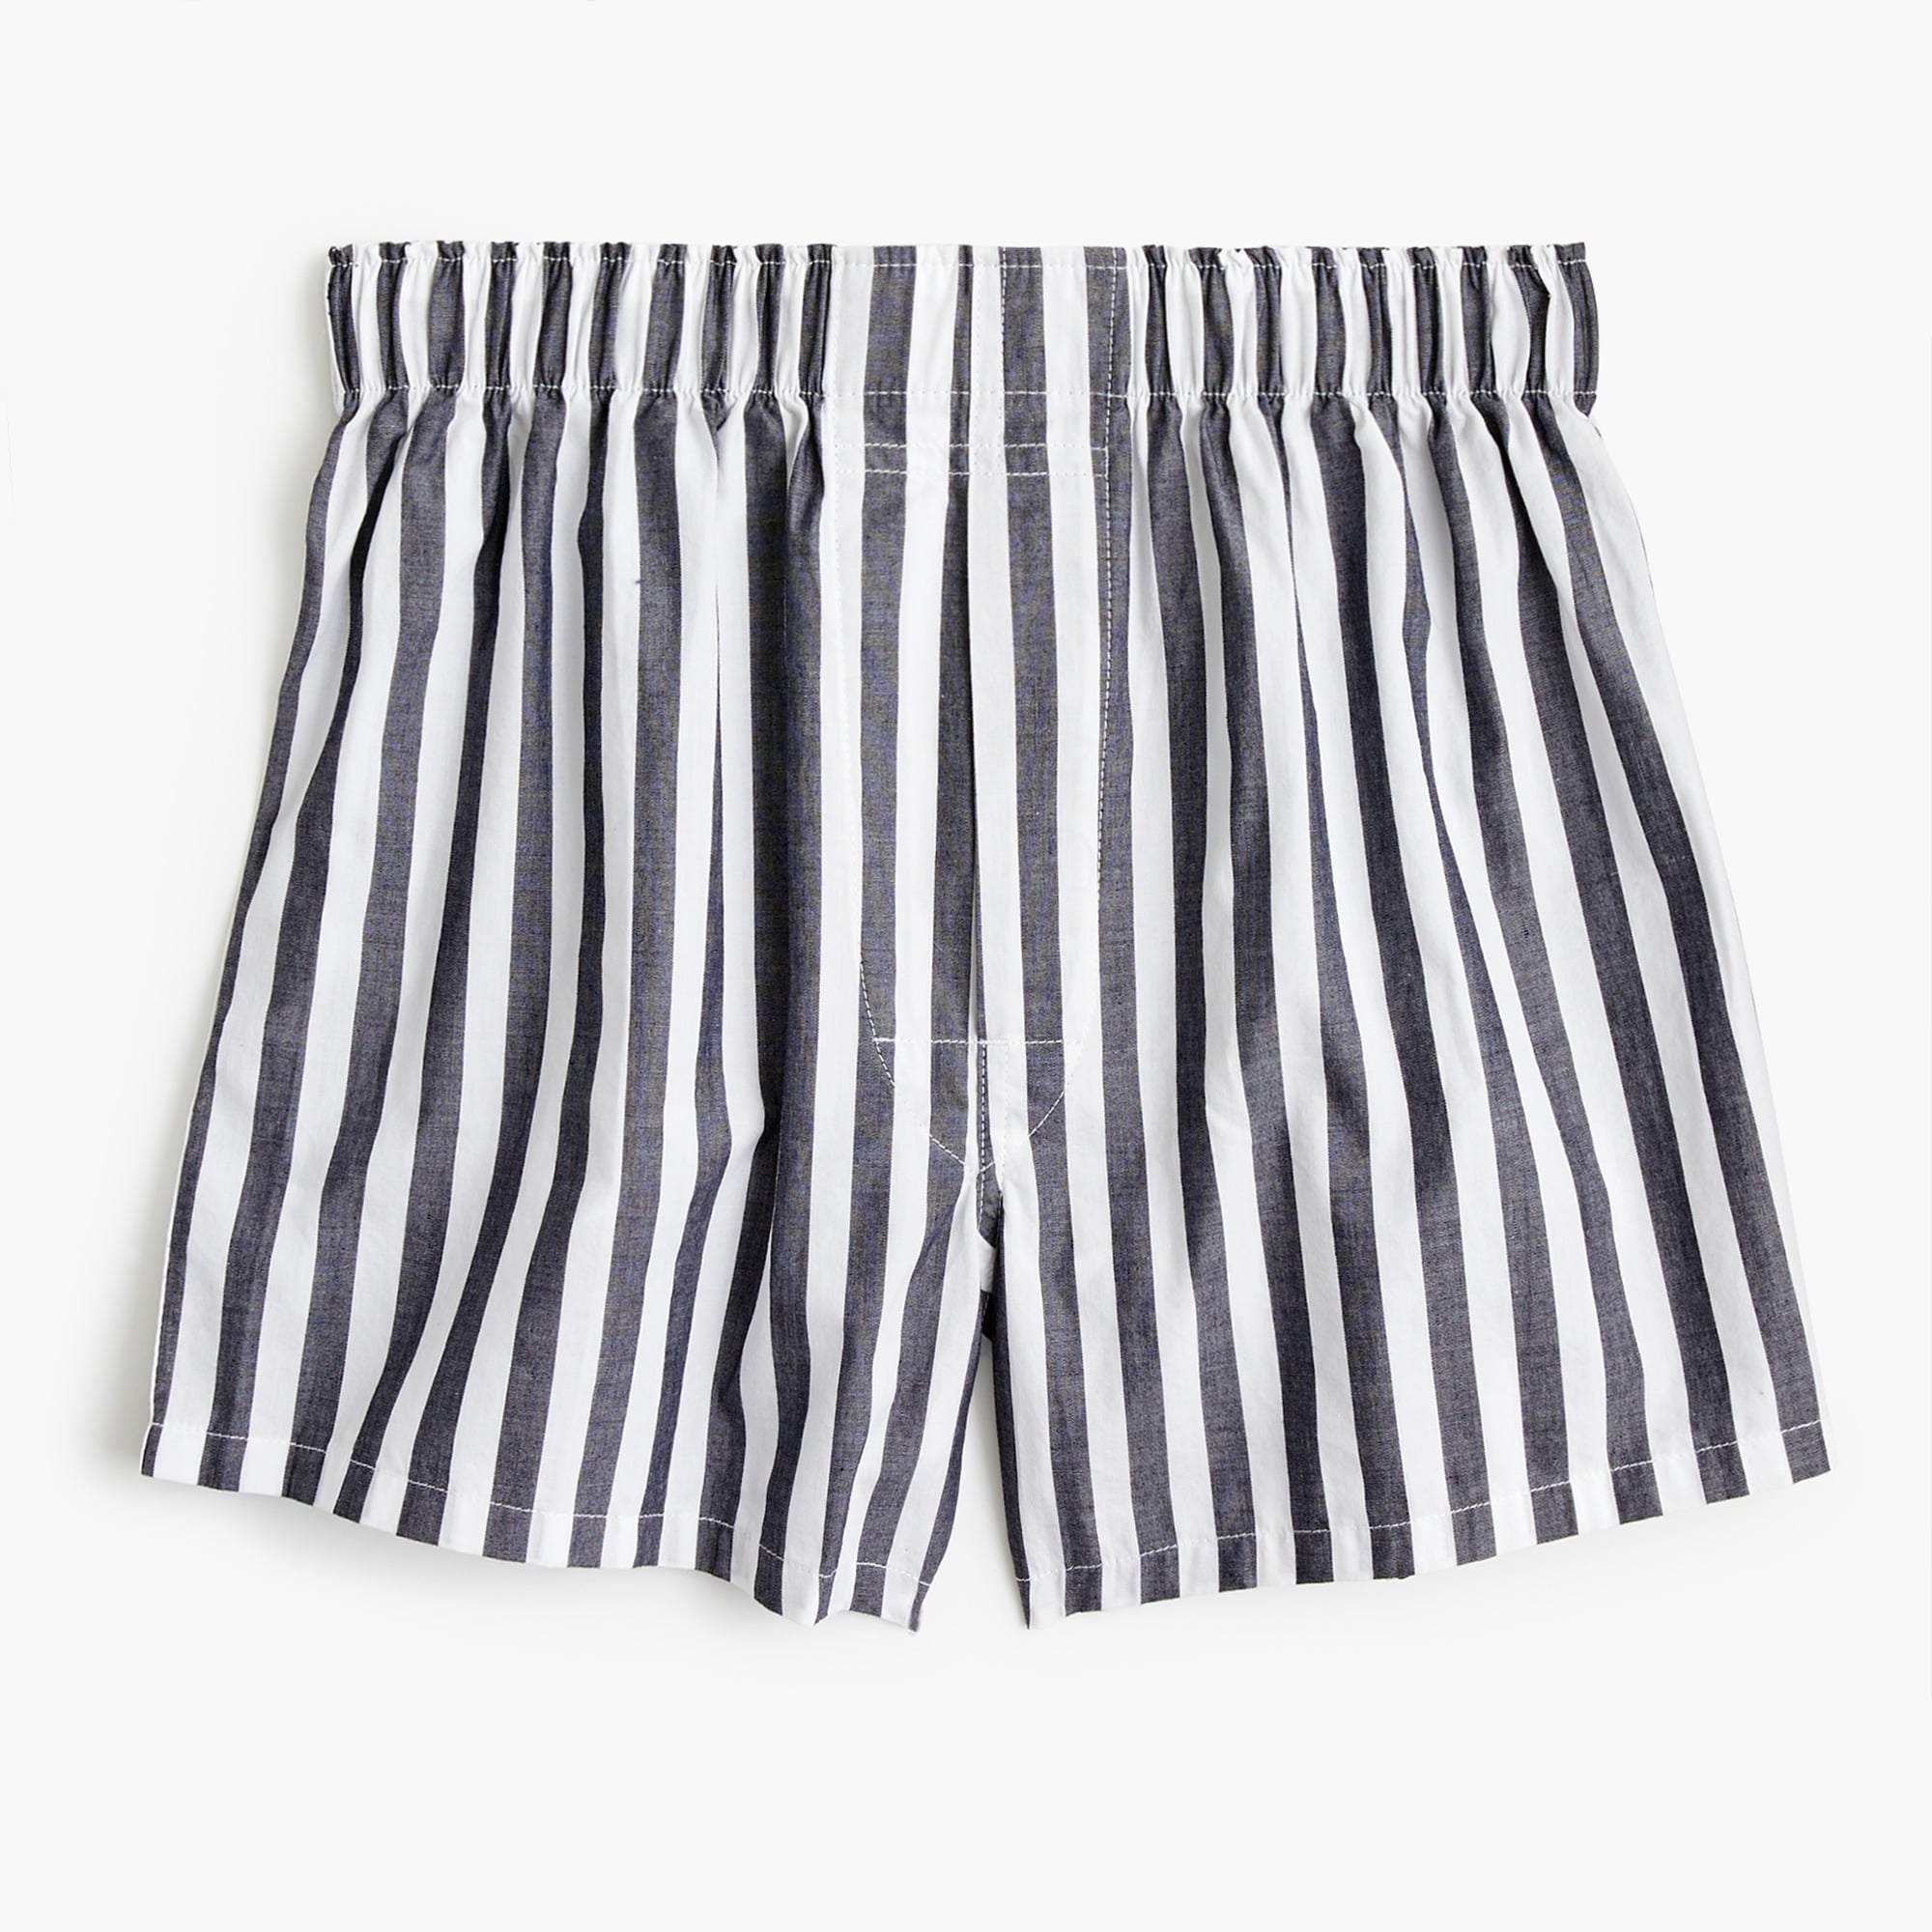 Image 1 for Indigo striped boxers